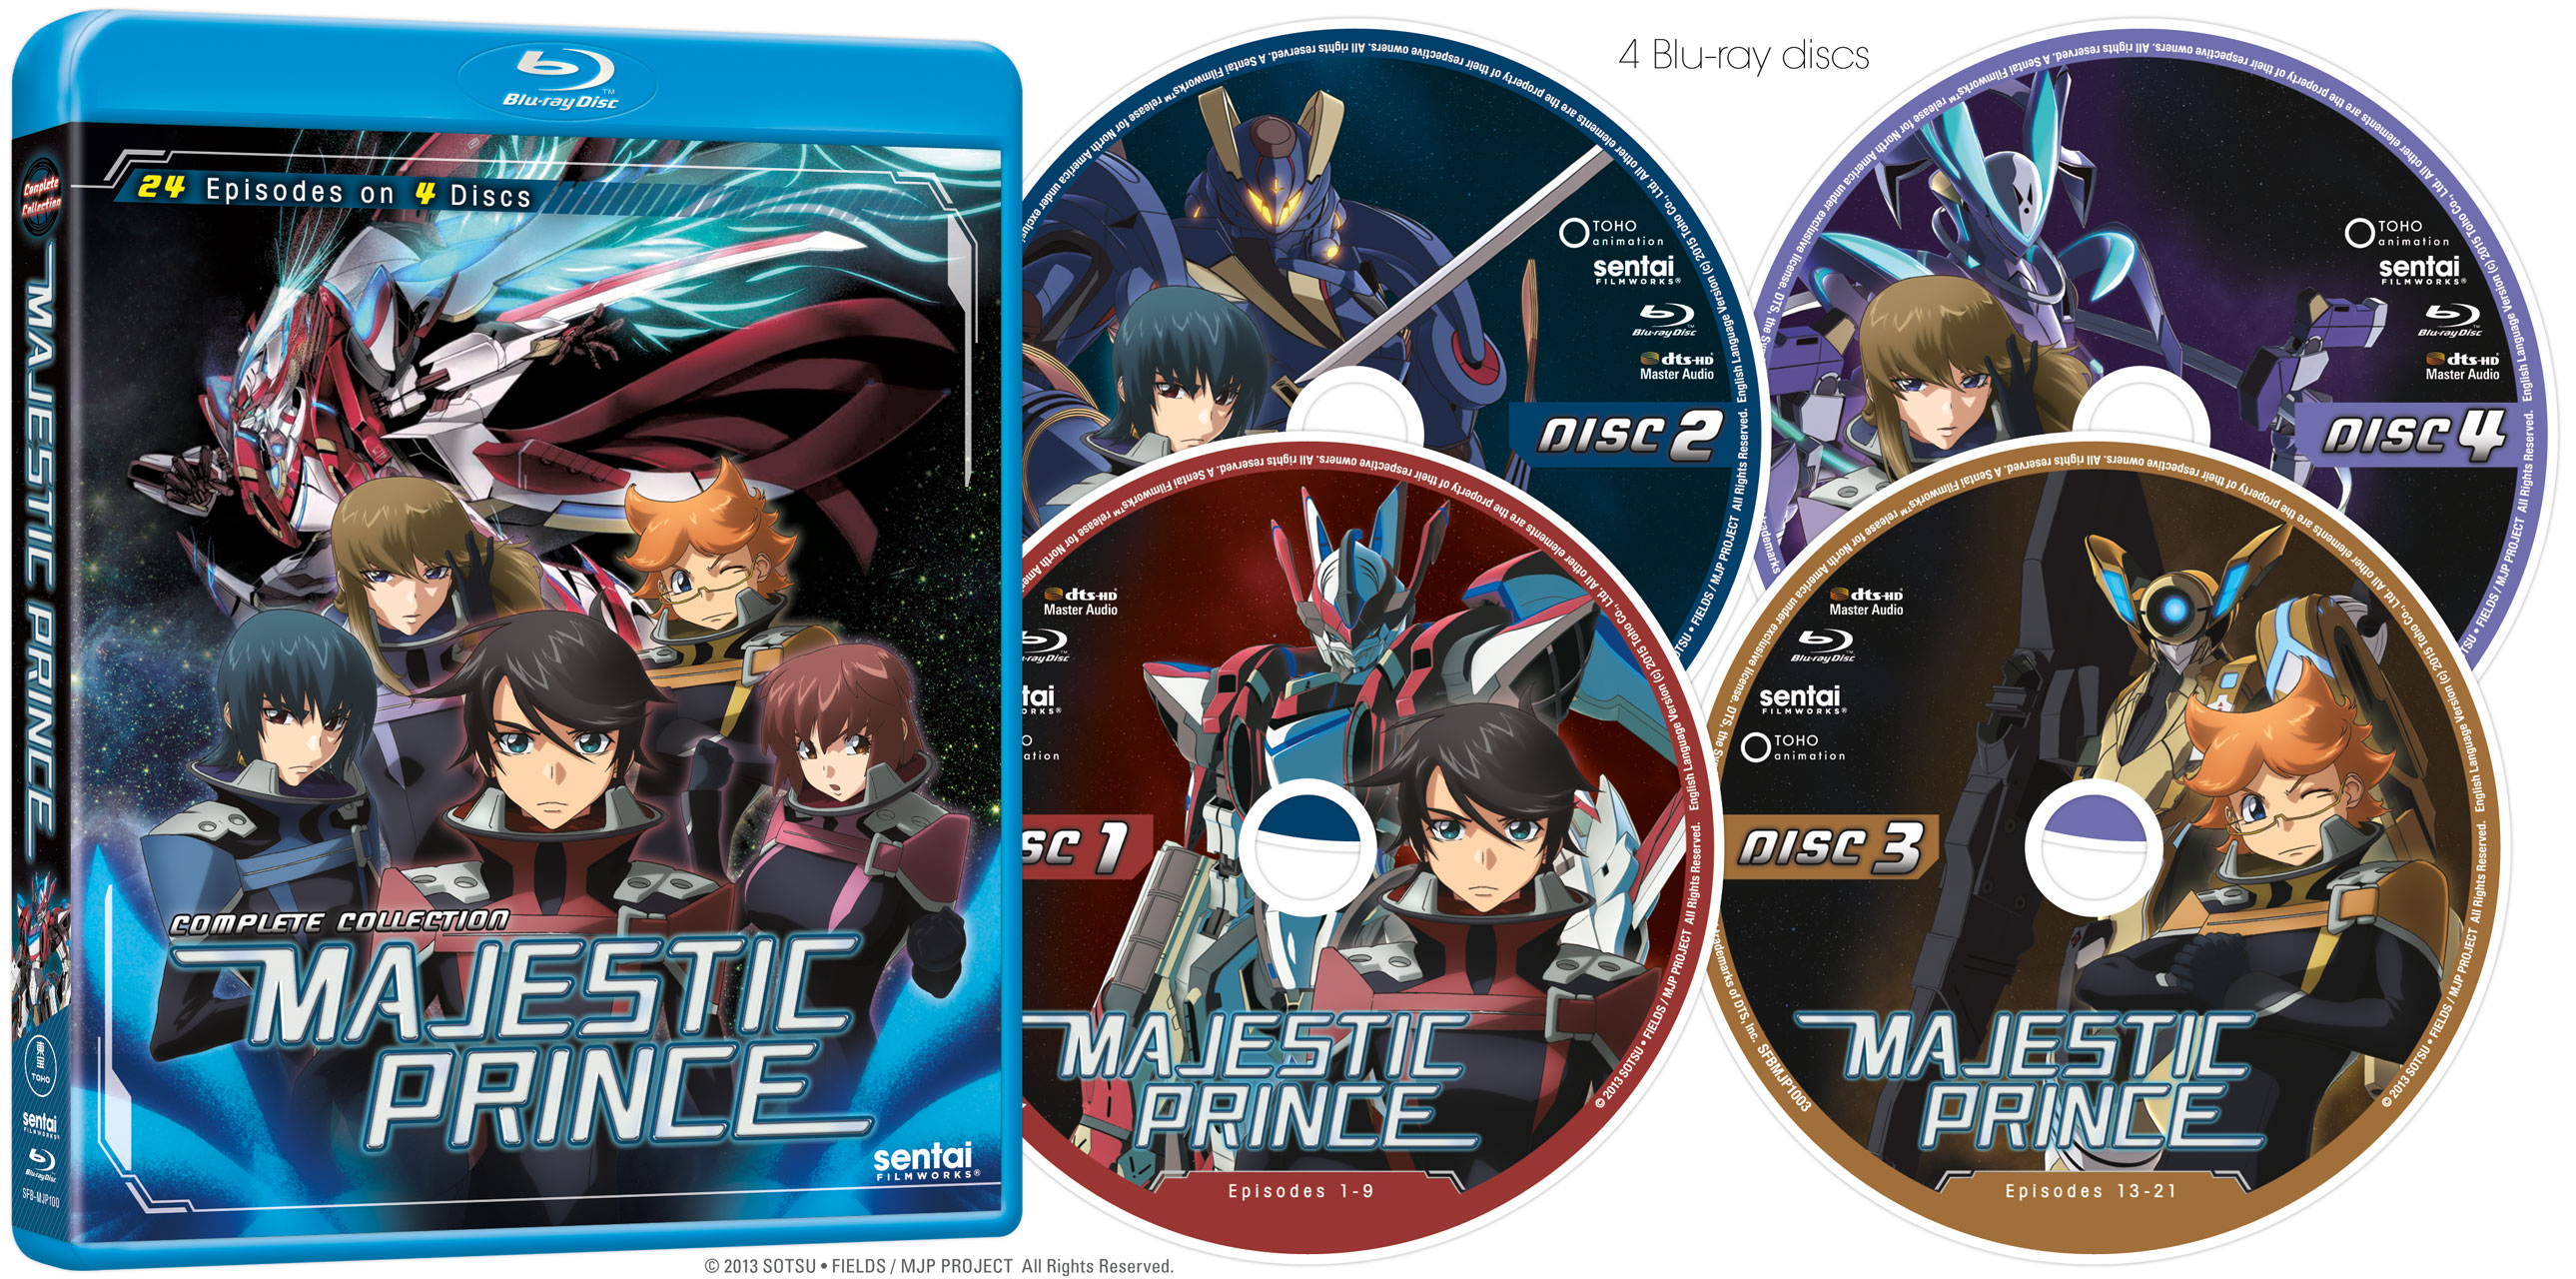 Majestic Prince Complete Collection Blu-ray